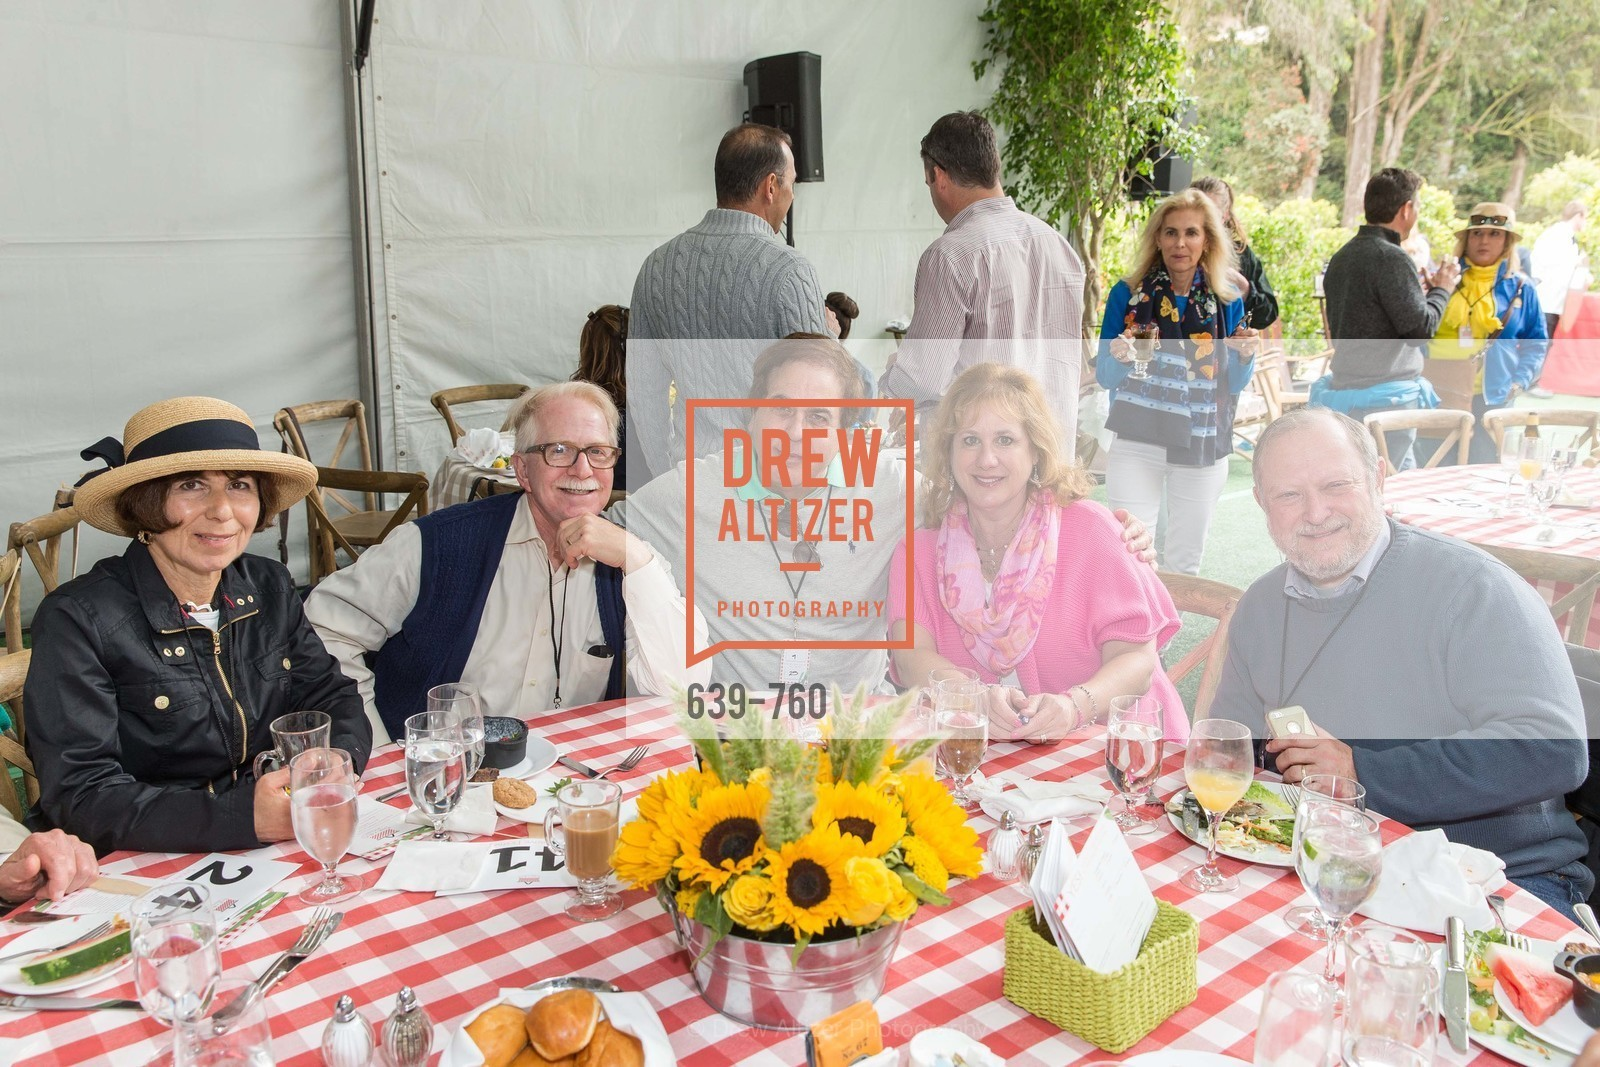 Jan Newman, Bob Newman, Jerry Mendelsohn, Michele Mendelsohn, Jon Benjamin, The Big Picnic! A Benefit & Concert for STERN GROVE FESTIVAL, US, June 14th, 2015,Drew Altizer, Drew Altizer Photography, full-service agency, private events, San Francisco photographer, photographer california